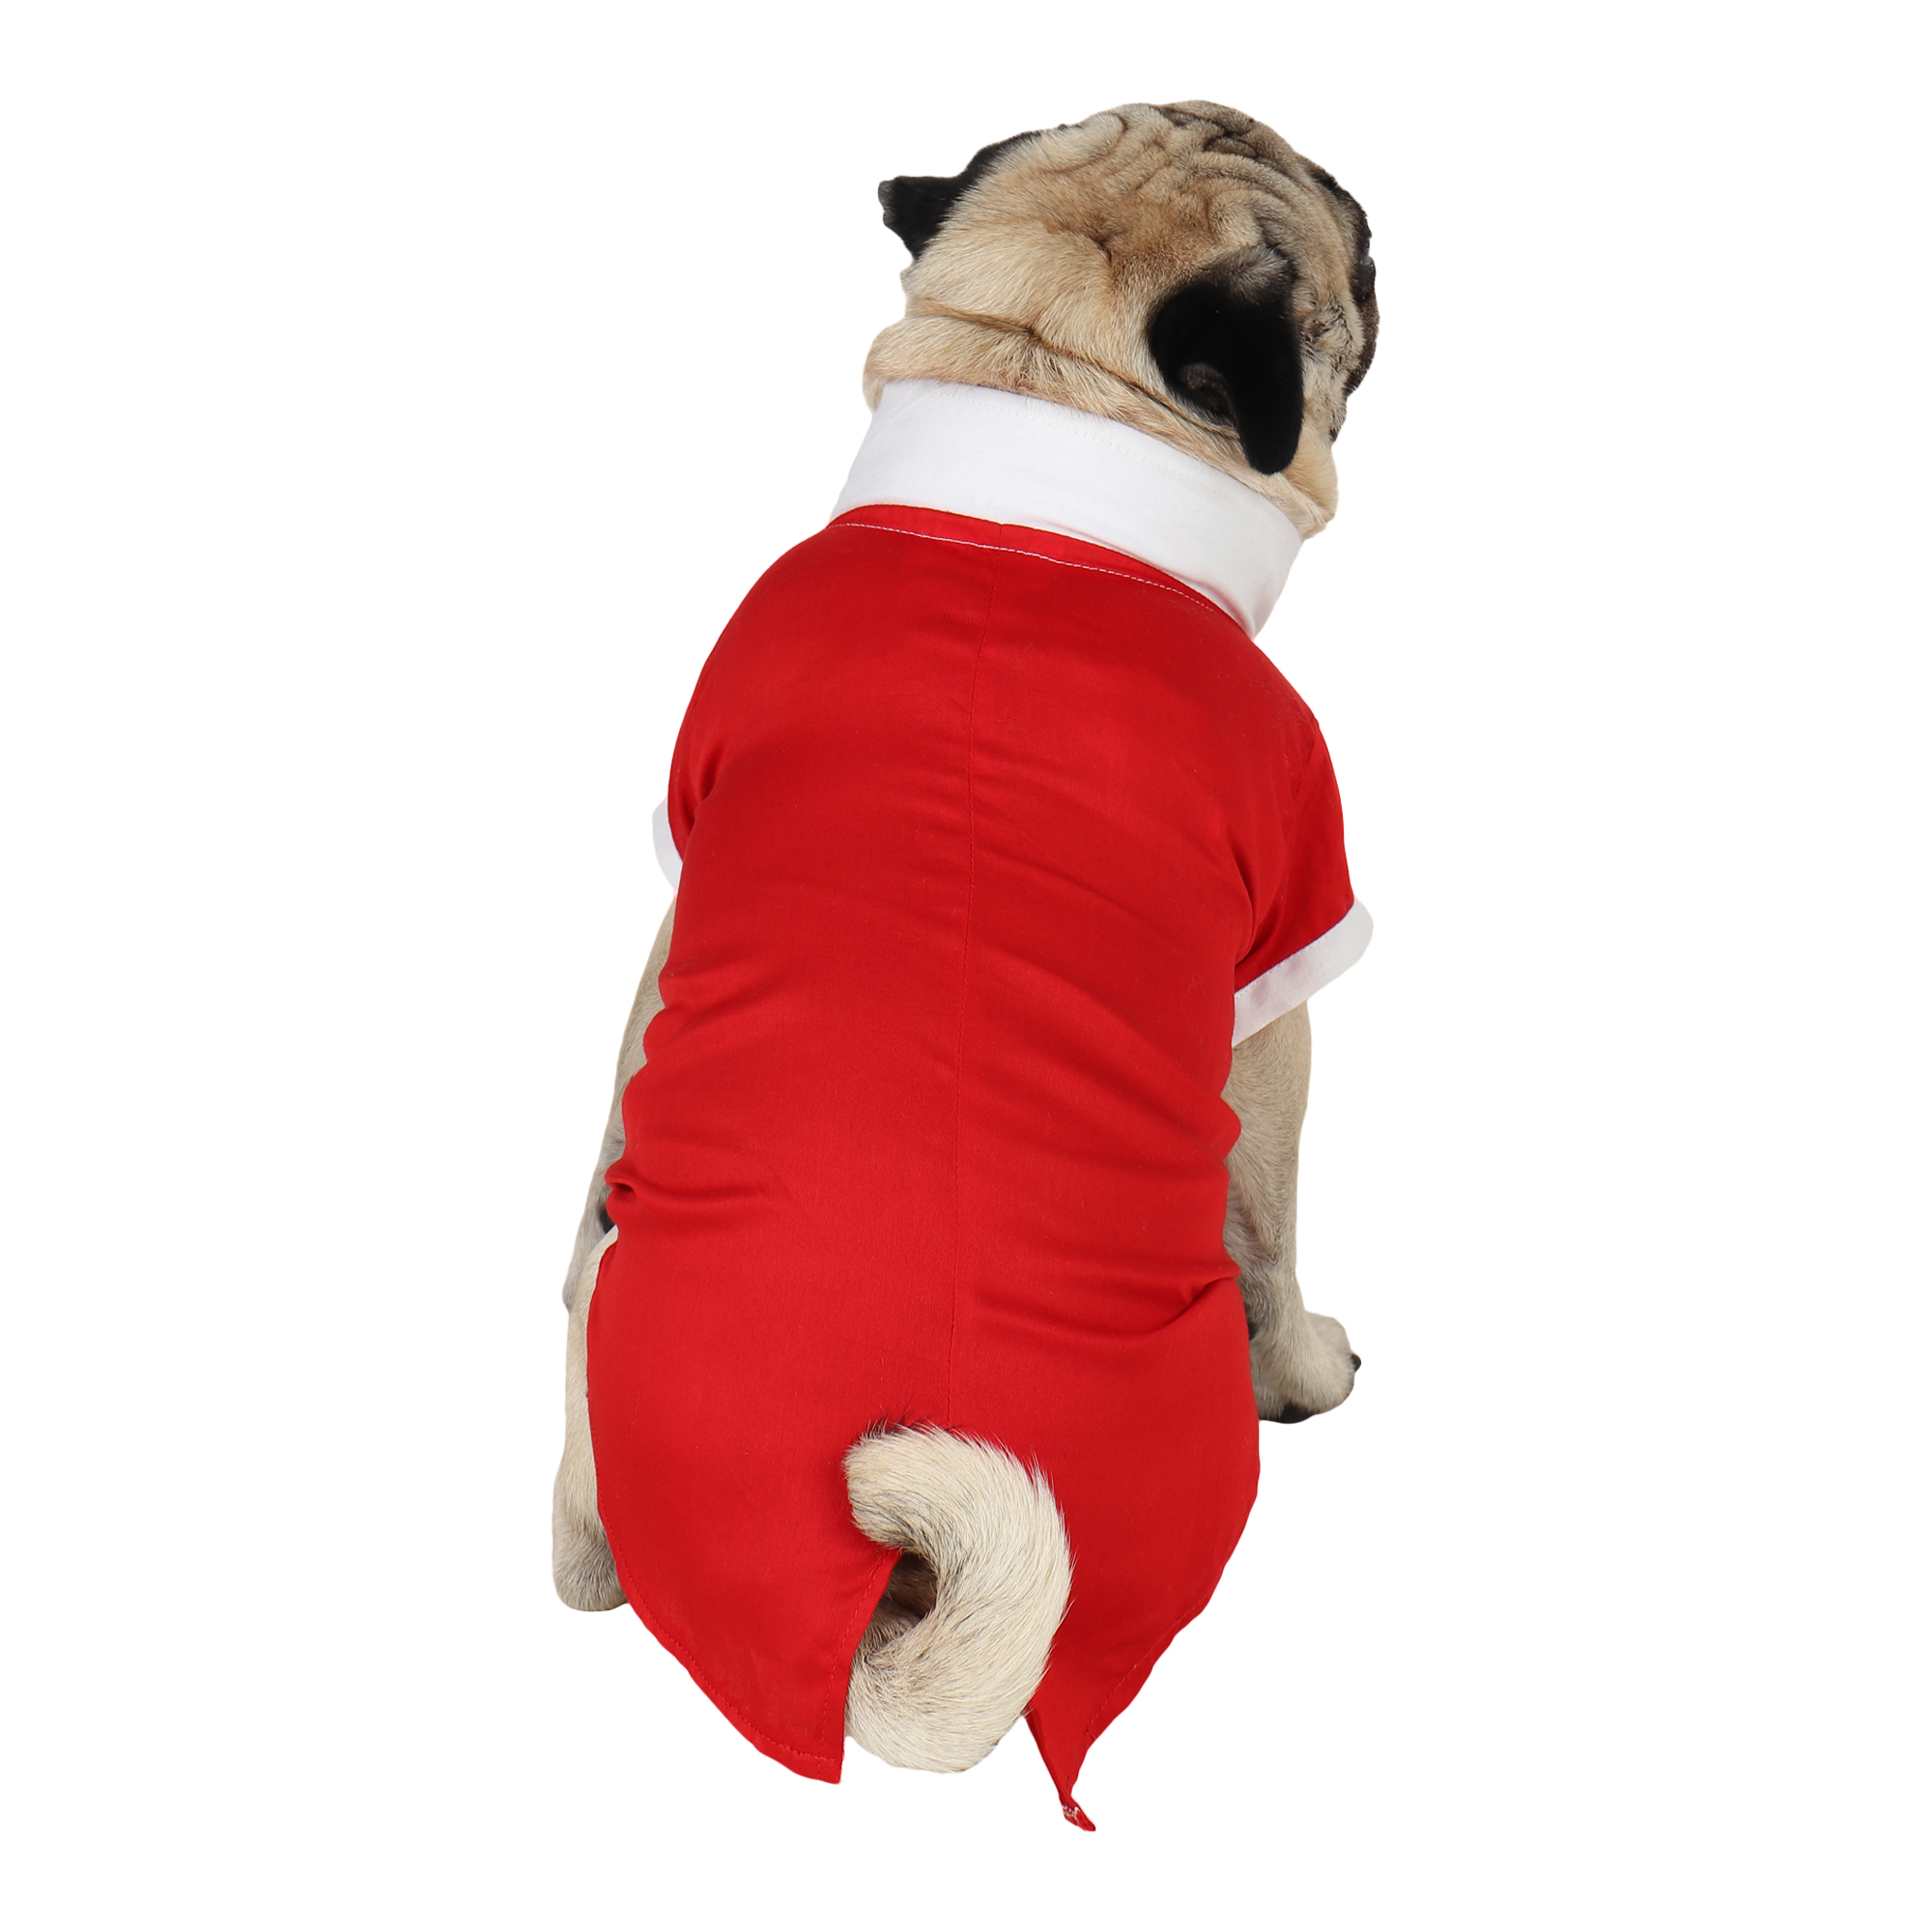 DOUGE COUTURE Party Tuxedo for Dogs (red)